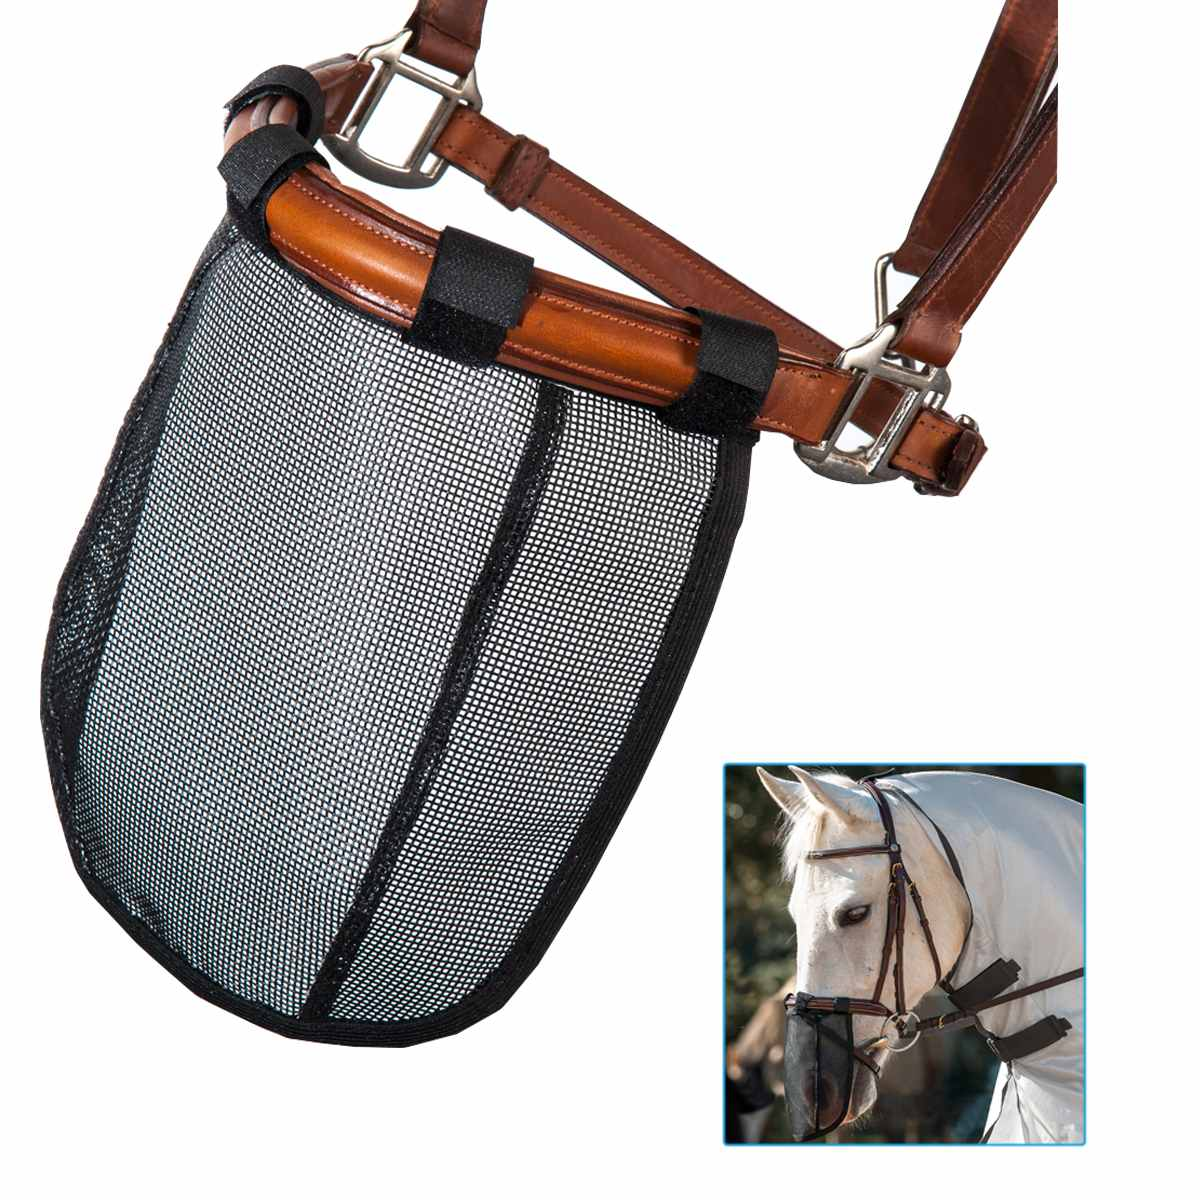 Nose-Mask Equestrian-Supply-Equipment Horse Mesh Detachable Mosquito-Proof